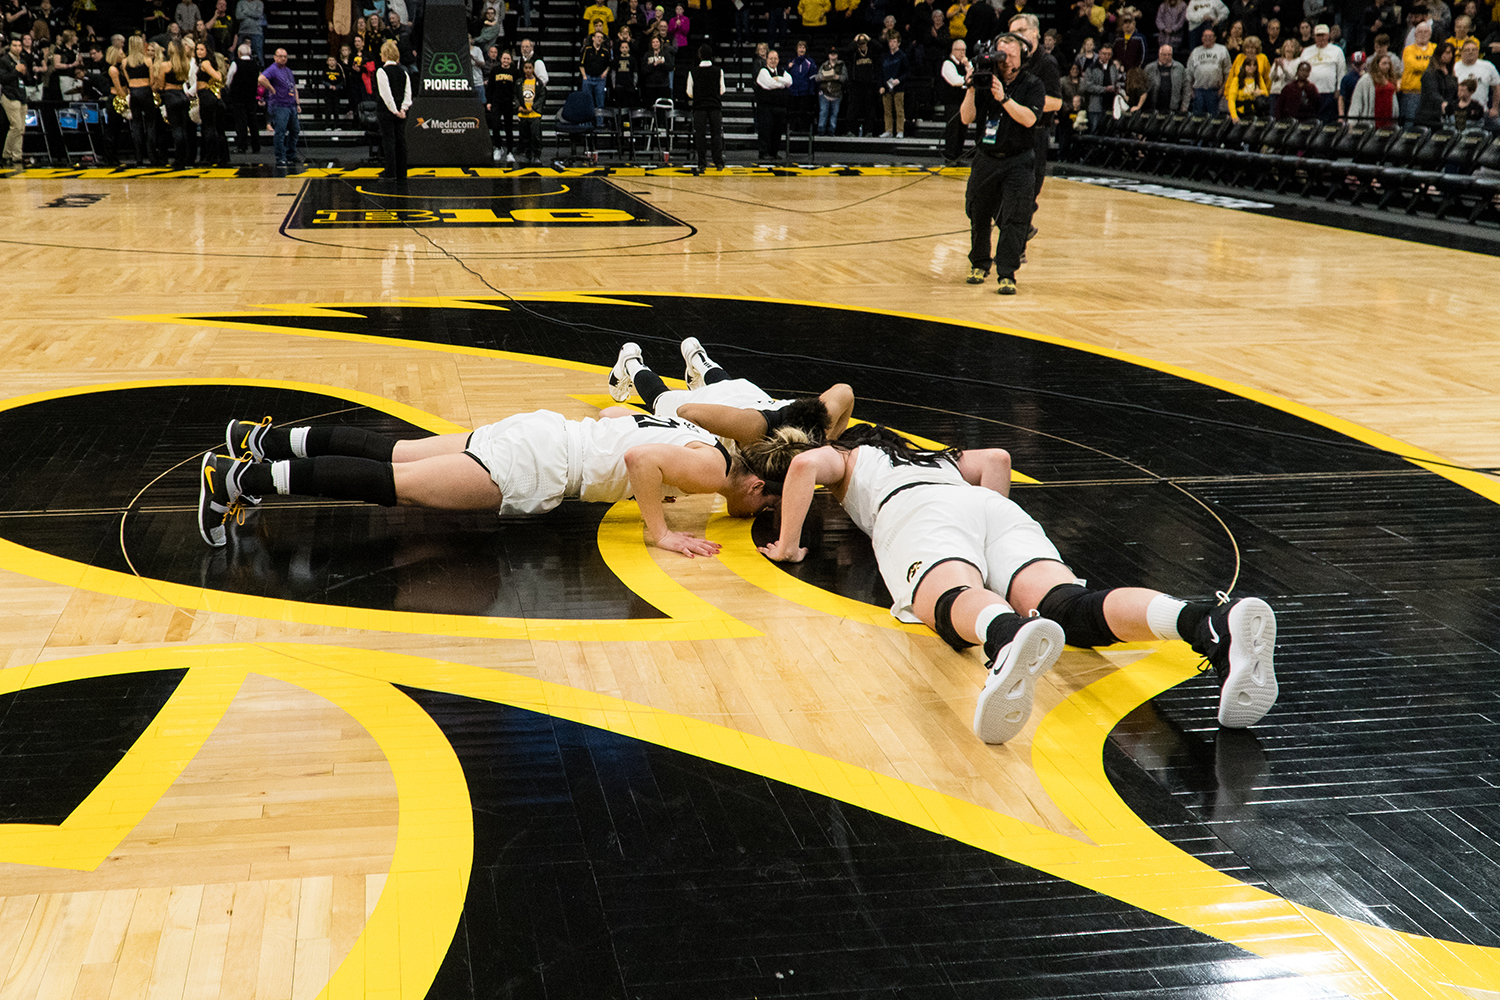 Iowa+center+Megan+Gustafson+%2810%29%2C+Iowa+guard+Tania+Davis+%2811%29+and+owa+forward+Hannah+Stewart+%2821%29+kiss+Carver+goodbye+after+the+Iowa%2FMissouri+NCAA+Tournament+second+round+women%E2%80%99s+basketball+game+in+Carver-Hawkeye+Arena+in+Iowa+City%2C+Iowa+on+Sunday%2C+March+24%2C+2019.+The+Hawkeyes+defeated+the+Tigers+68-52.